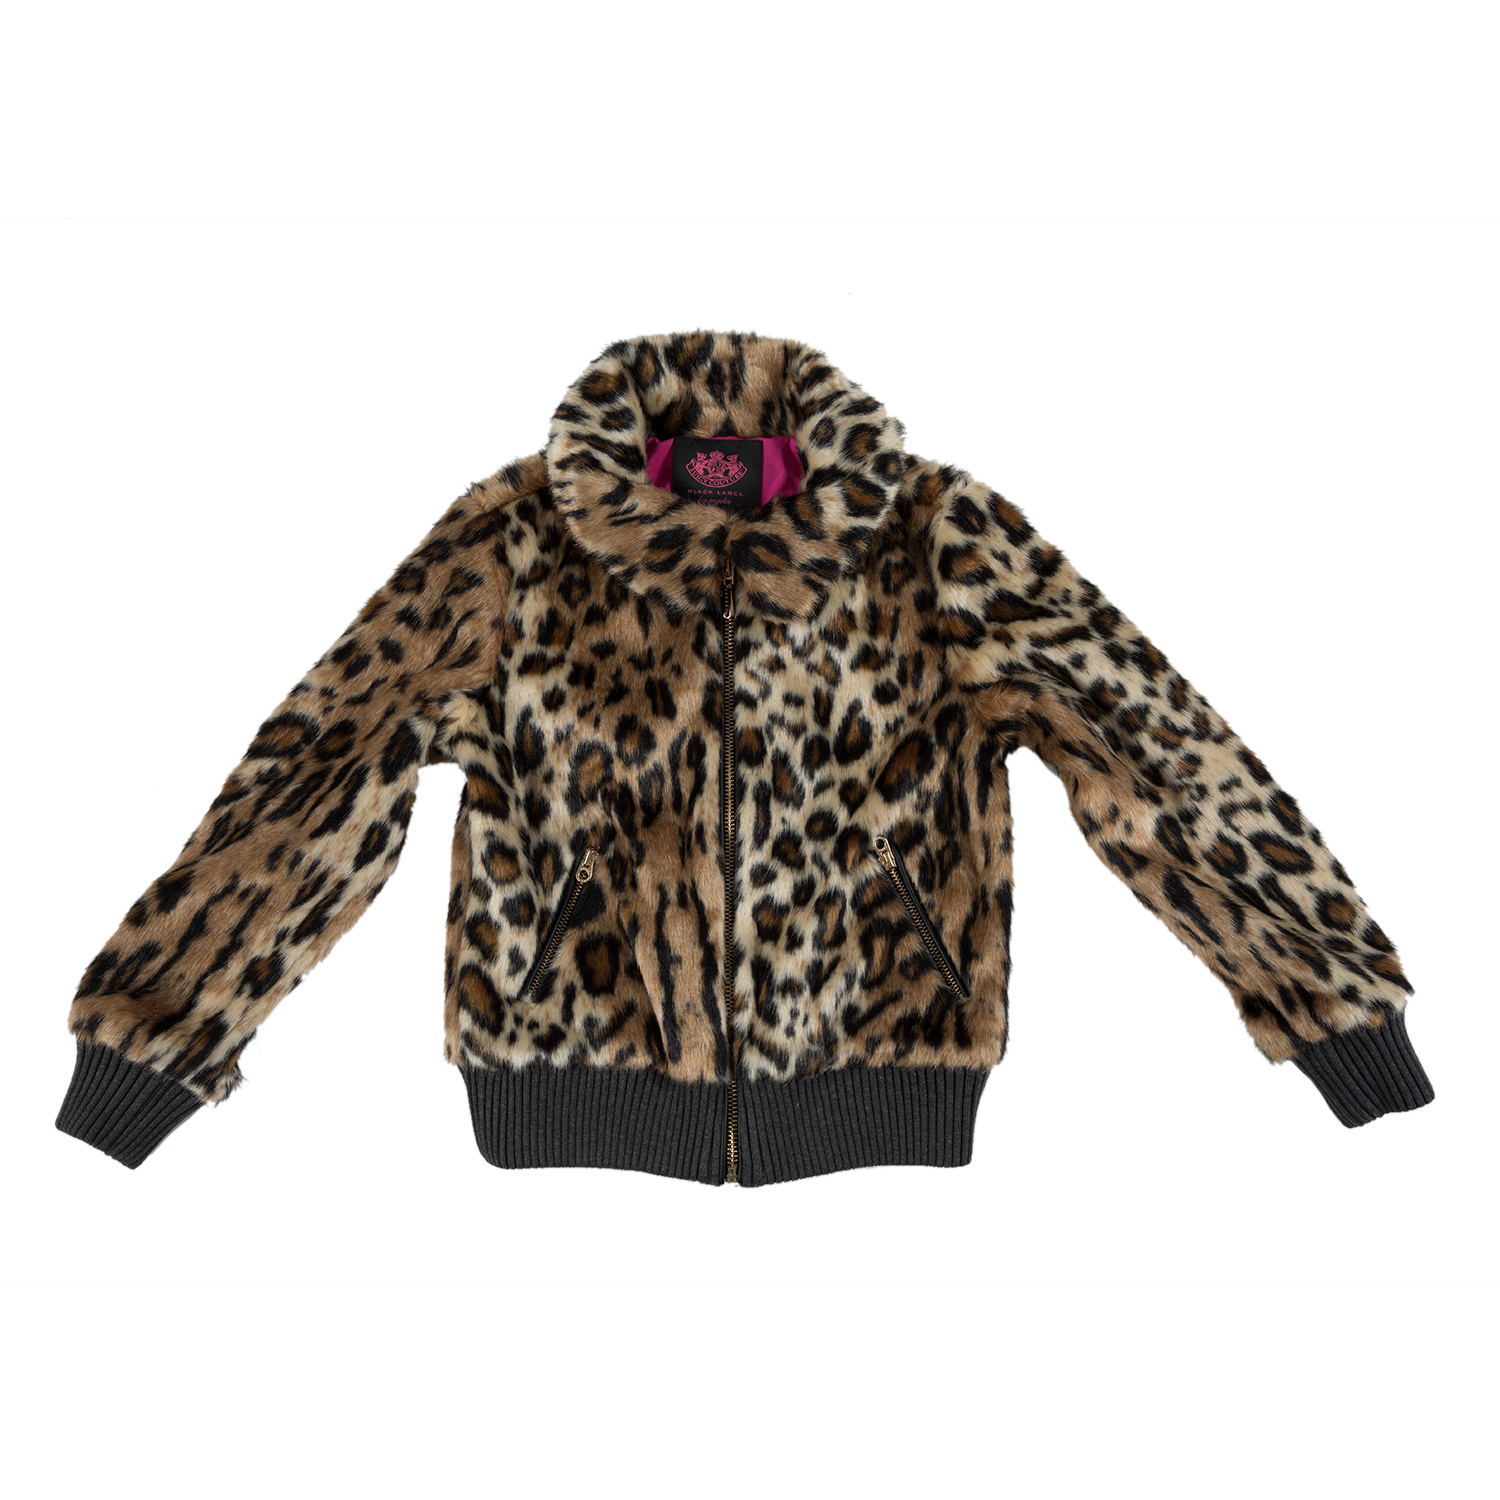 6c8ebec97c1 Factoryoutlet JUICY COUTURE KIDS - Κοριτσίστικο τζάκετ JUICY COUTURE KIDS  CHEETAH PONY FUR με λεοπάρ μοτίβο